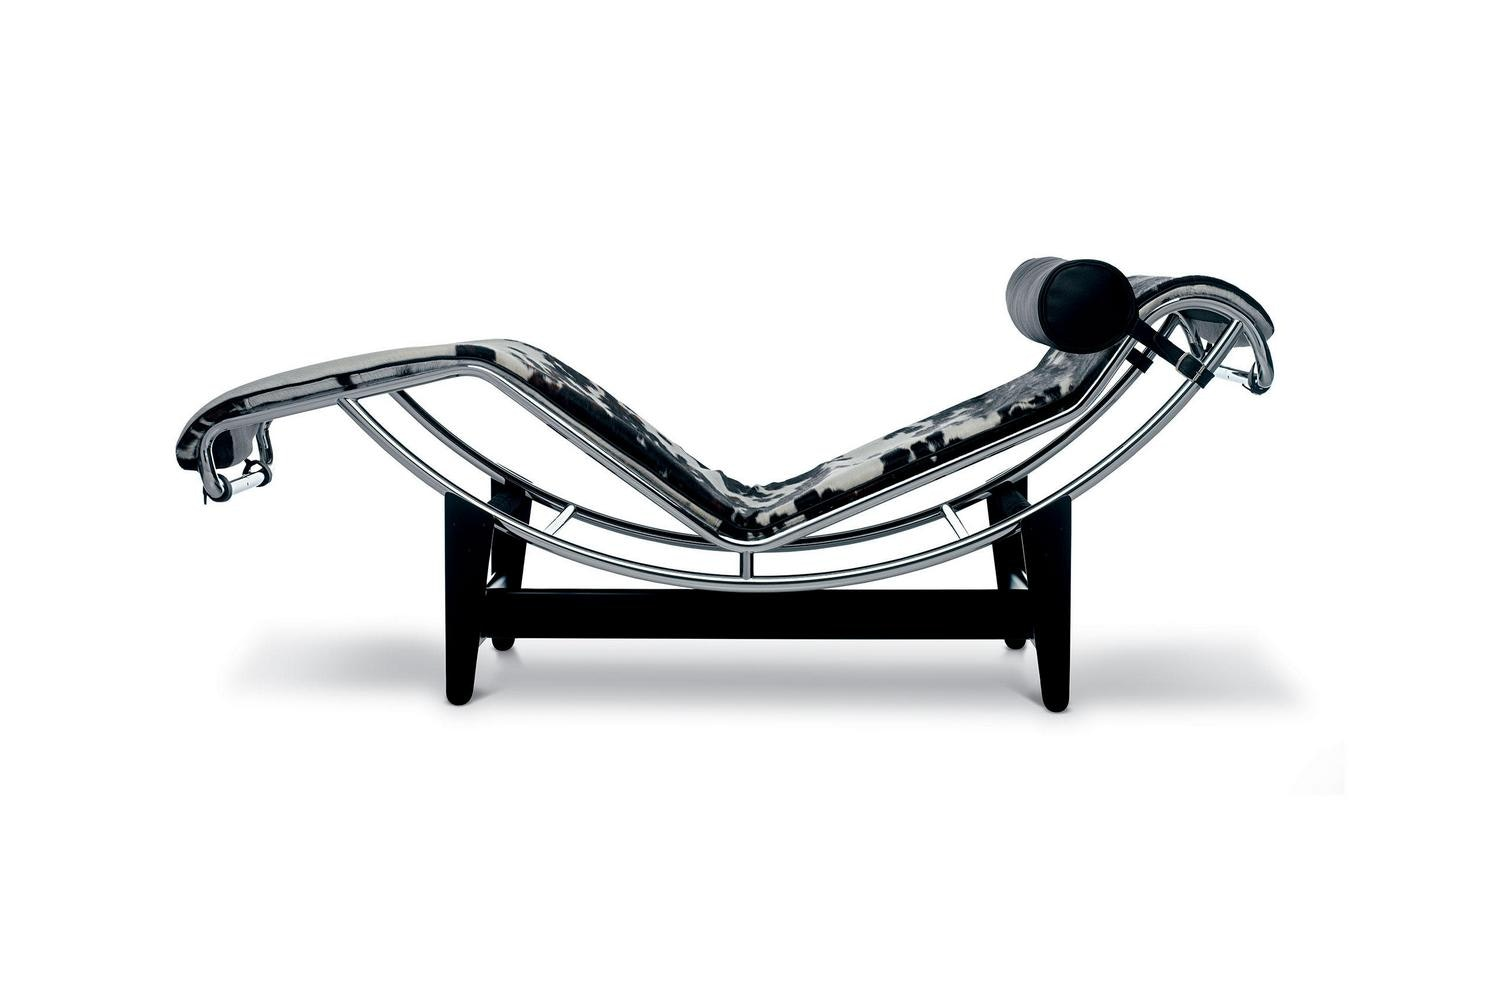 LC4 Chaise Longue by Le Corbusier, Pierre Jeanneret, Charlotte Perriand for Cassina